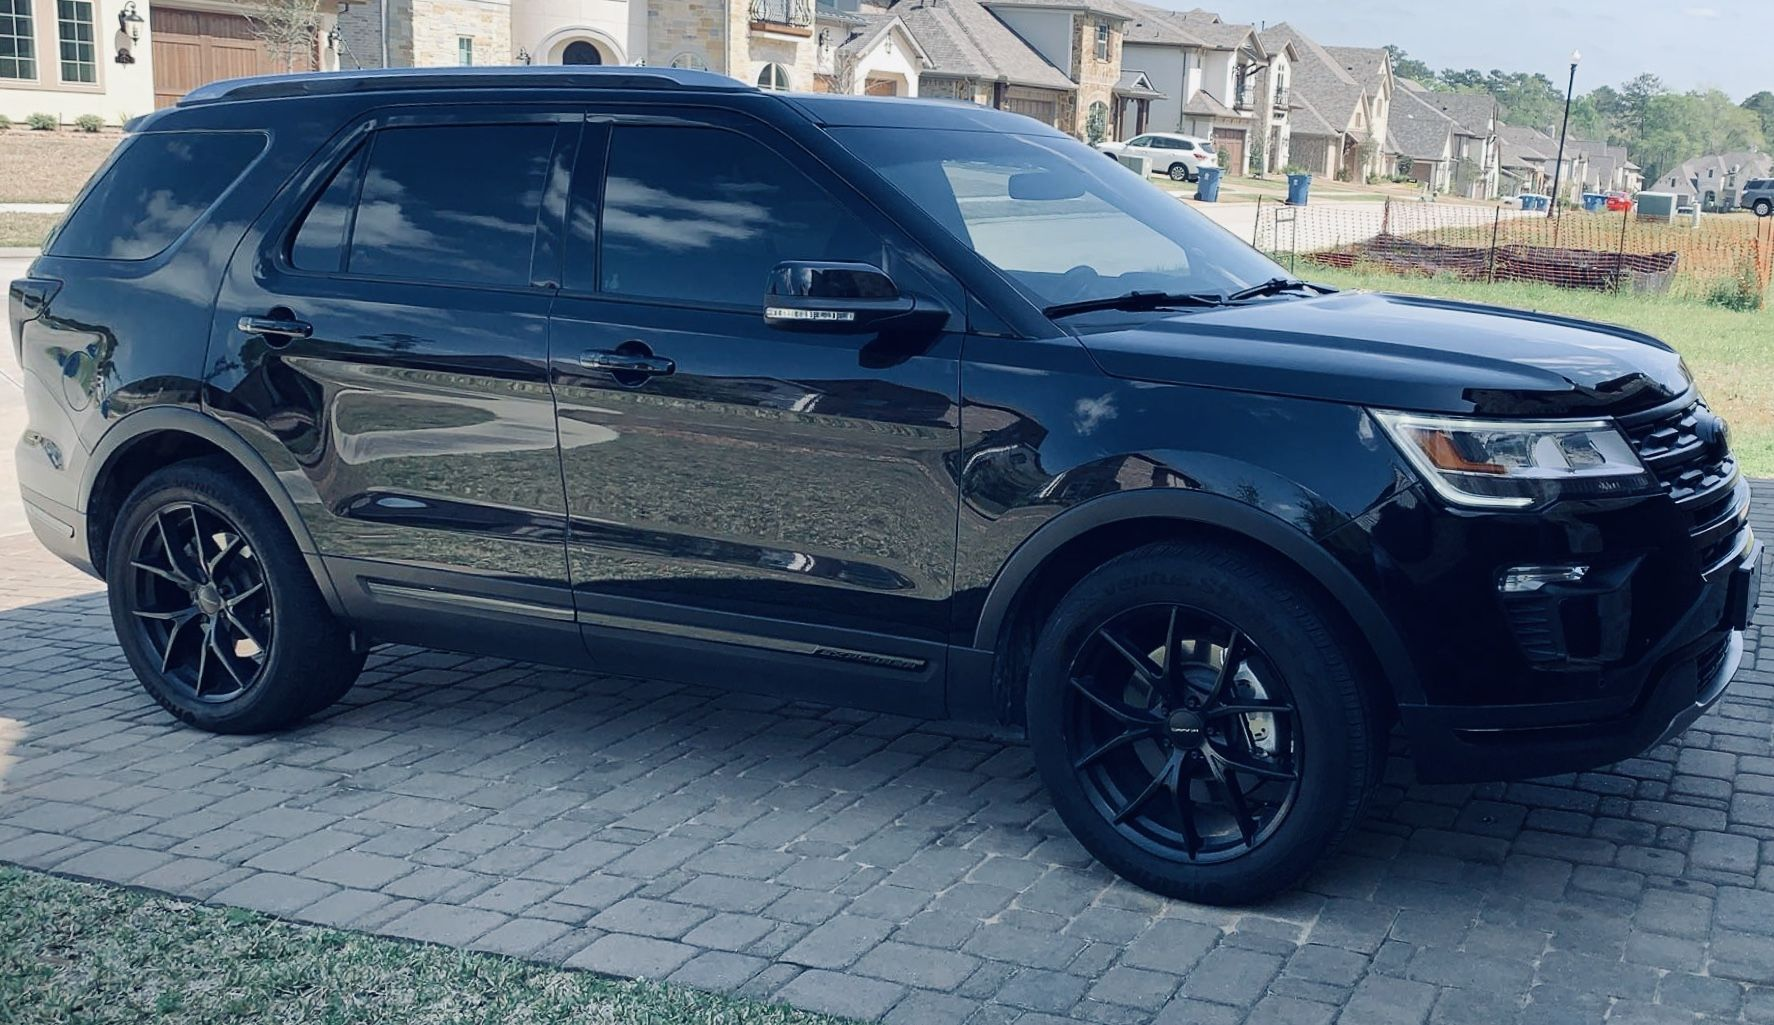 Blacked Out 2019 Ford Explorer In 2020 2019 Ford Explorer Ford Explorer New Ford Explorer